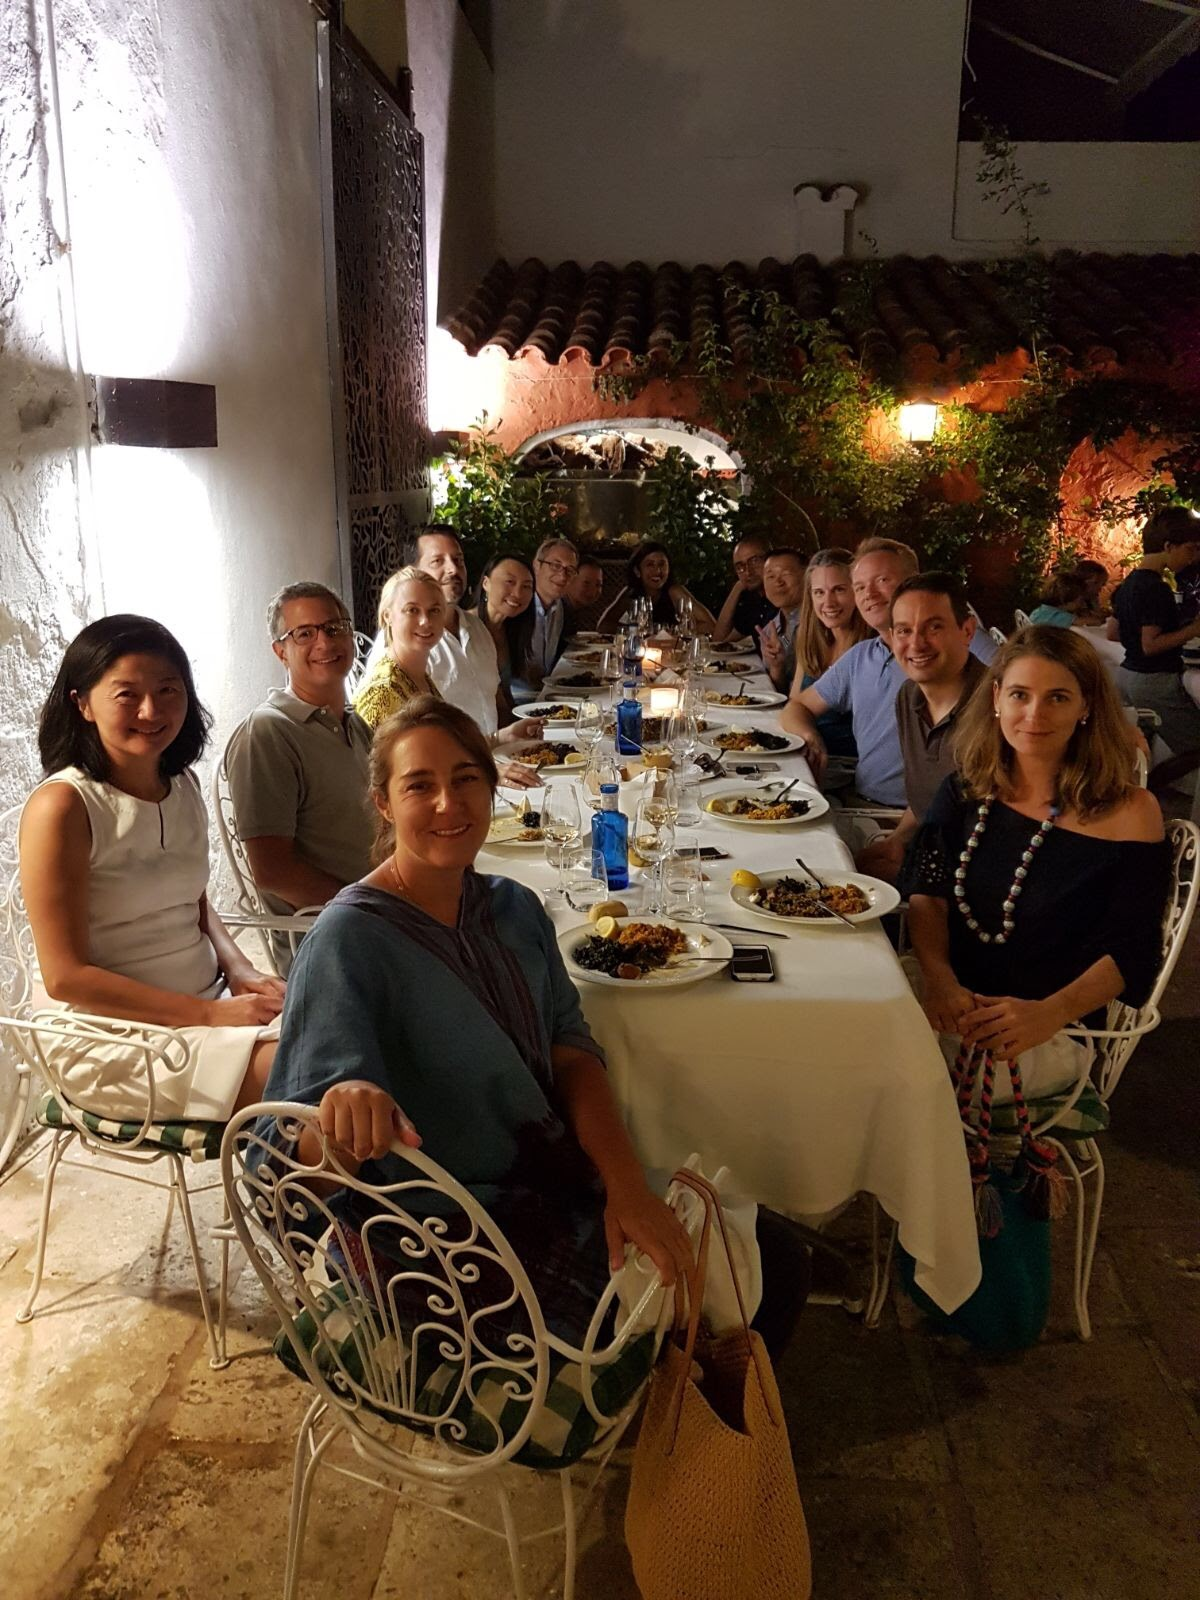 07282017 Dinner in Menorca (4)